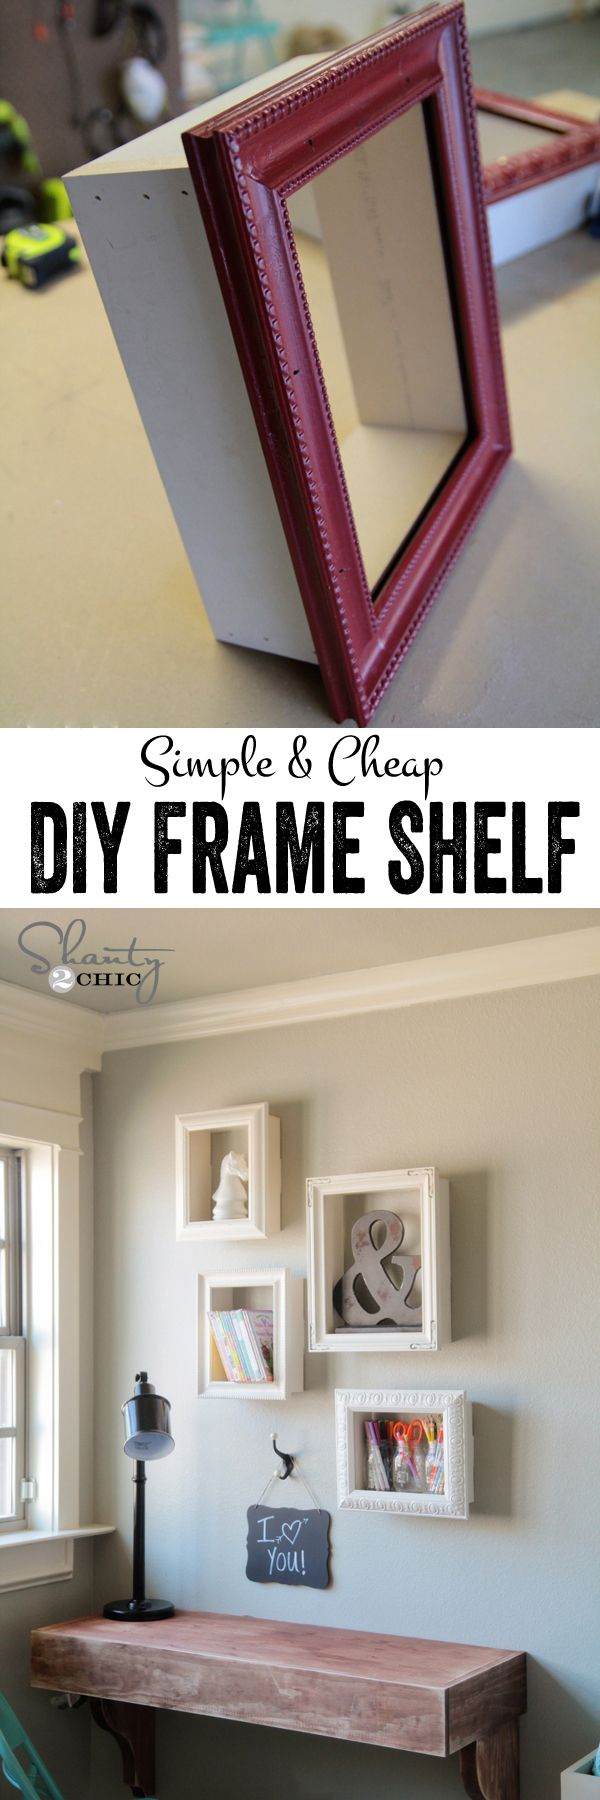 Create your own shabby chic shadow box frame shelves. A few tools from the hardware store and some repurposed frames and you've added a new fun flair to your wall!